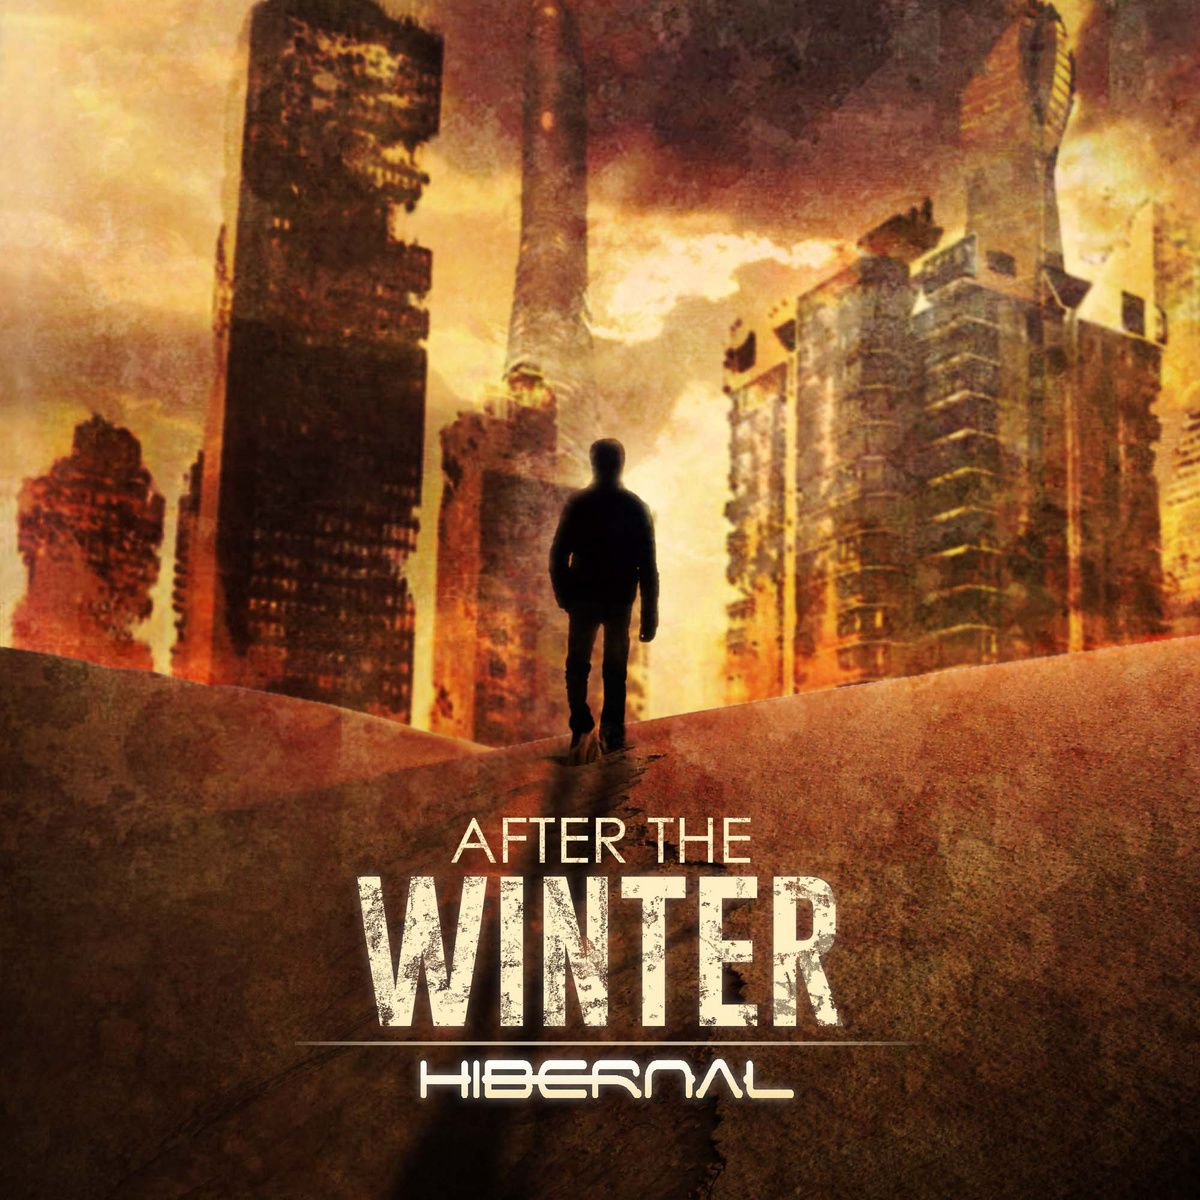 After The Winter By Hibernal